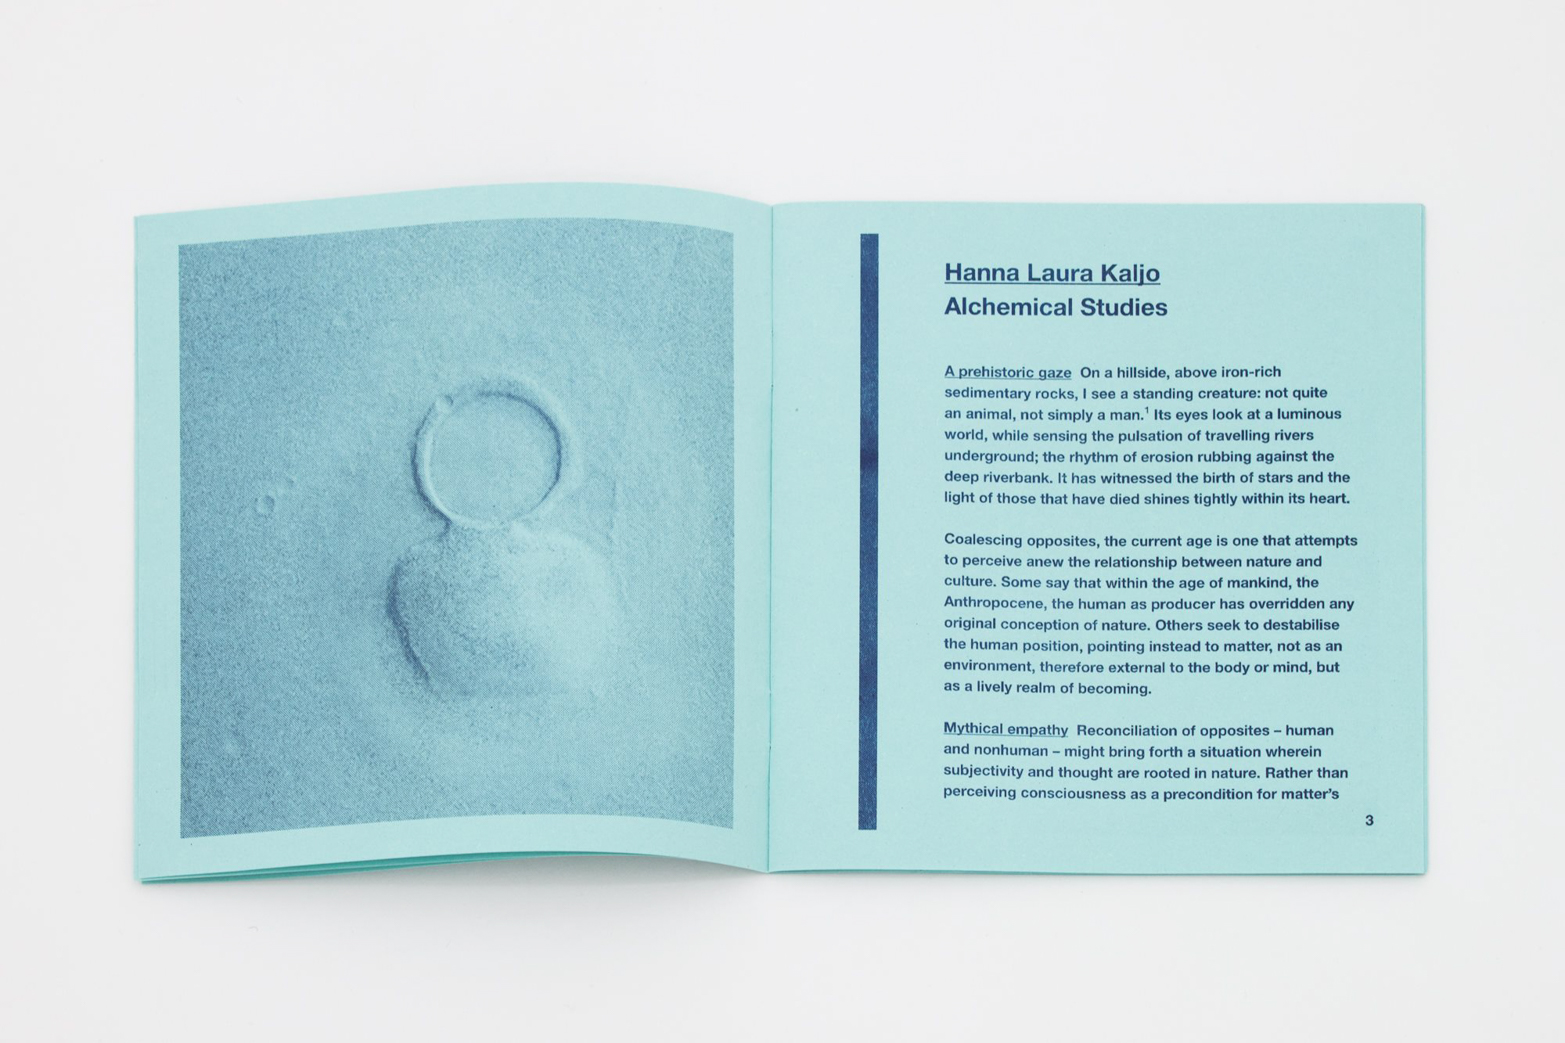 Publication design by Rowena Harris for Tenderpixel.